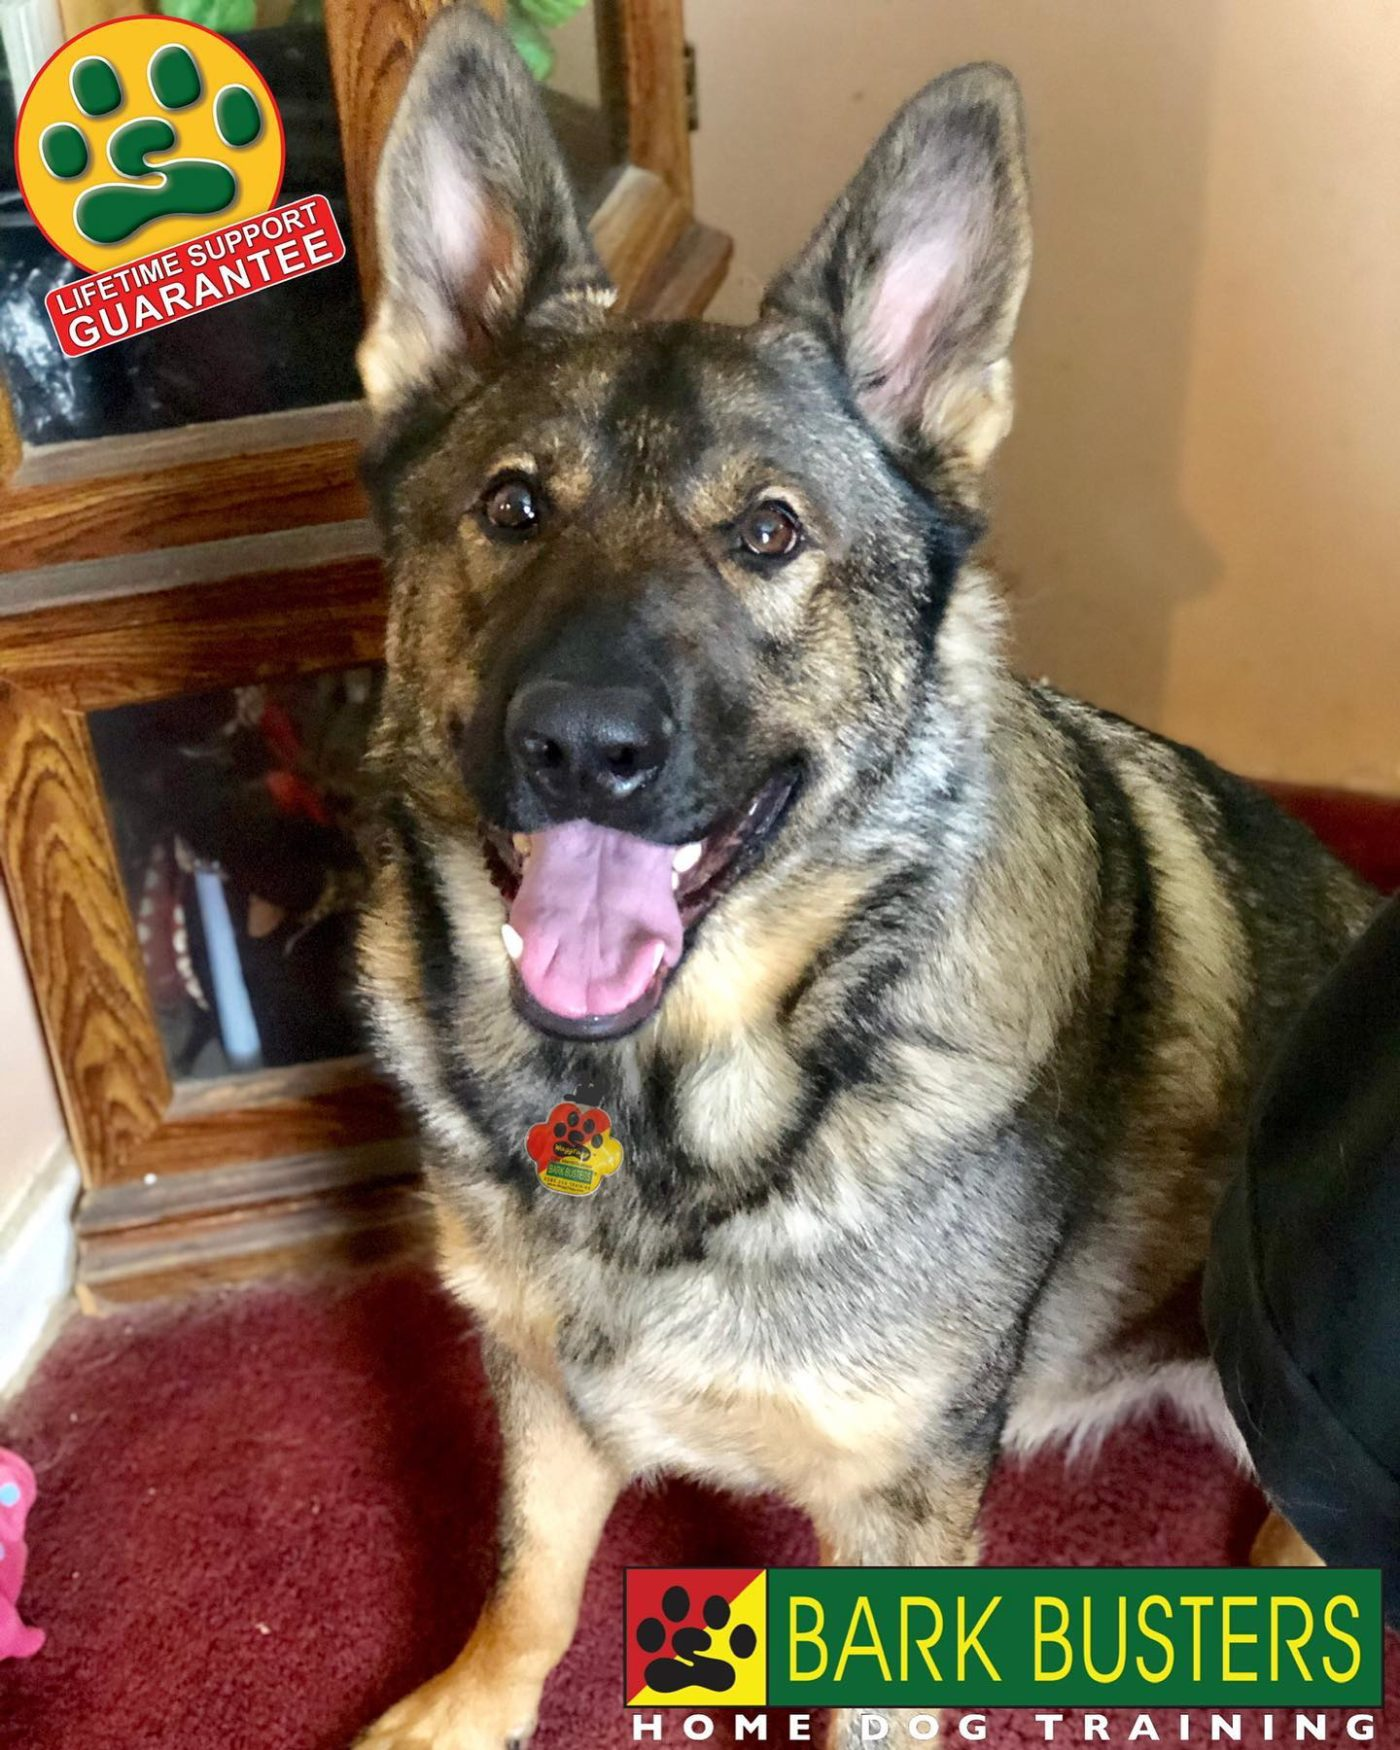 #GermanShepherd #BarkBusters #dogtrainer #dogtraining #dogtrainingNorthernNewJersey #speakdog #dogs #puppies #HappyDogsHappyFamilies #dogsOfBarkBusters #paramus #ridgewood #oradell #closter #edgewater #englewood #demarest #haworth